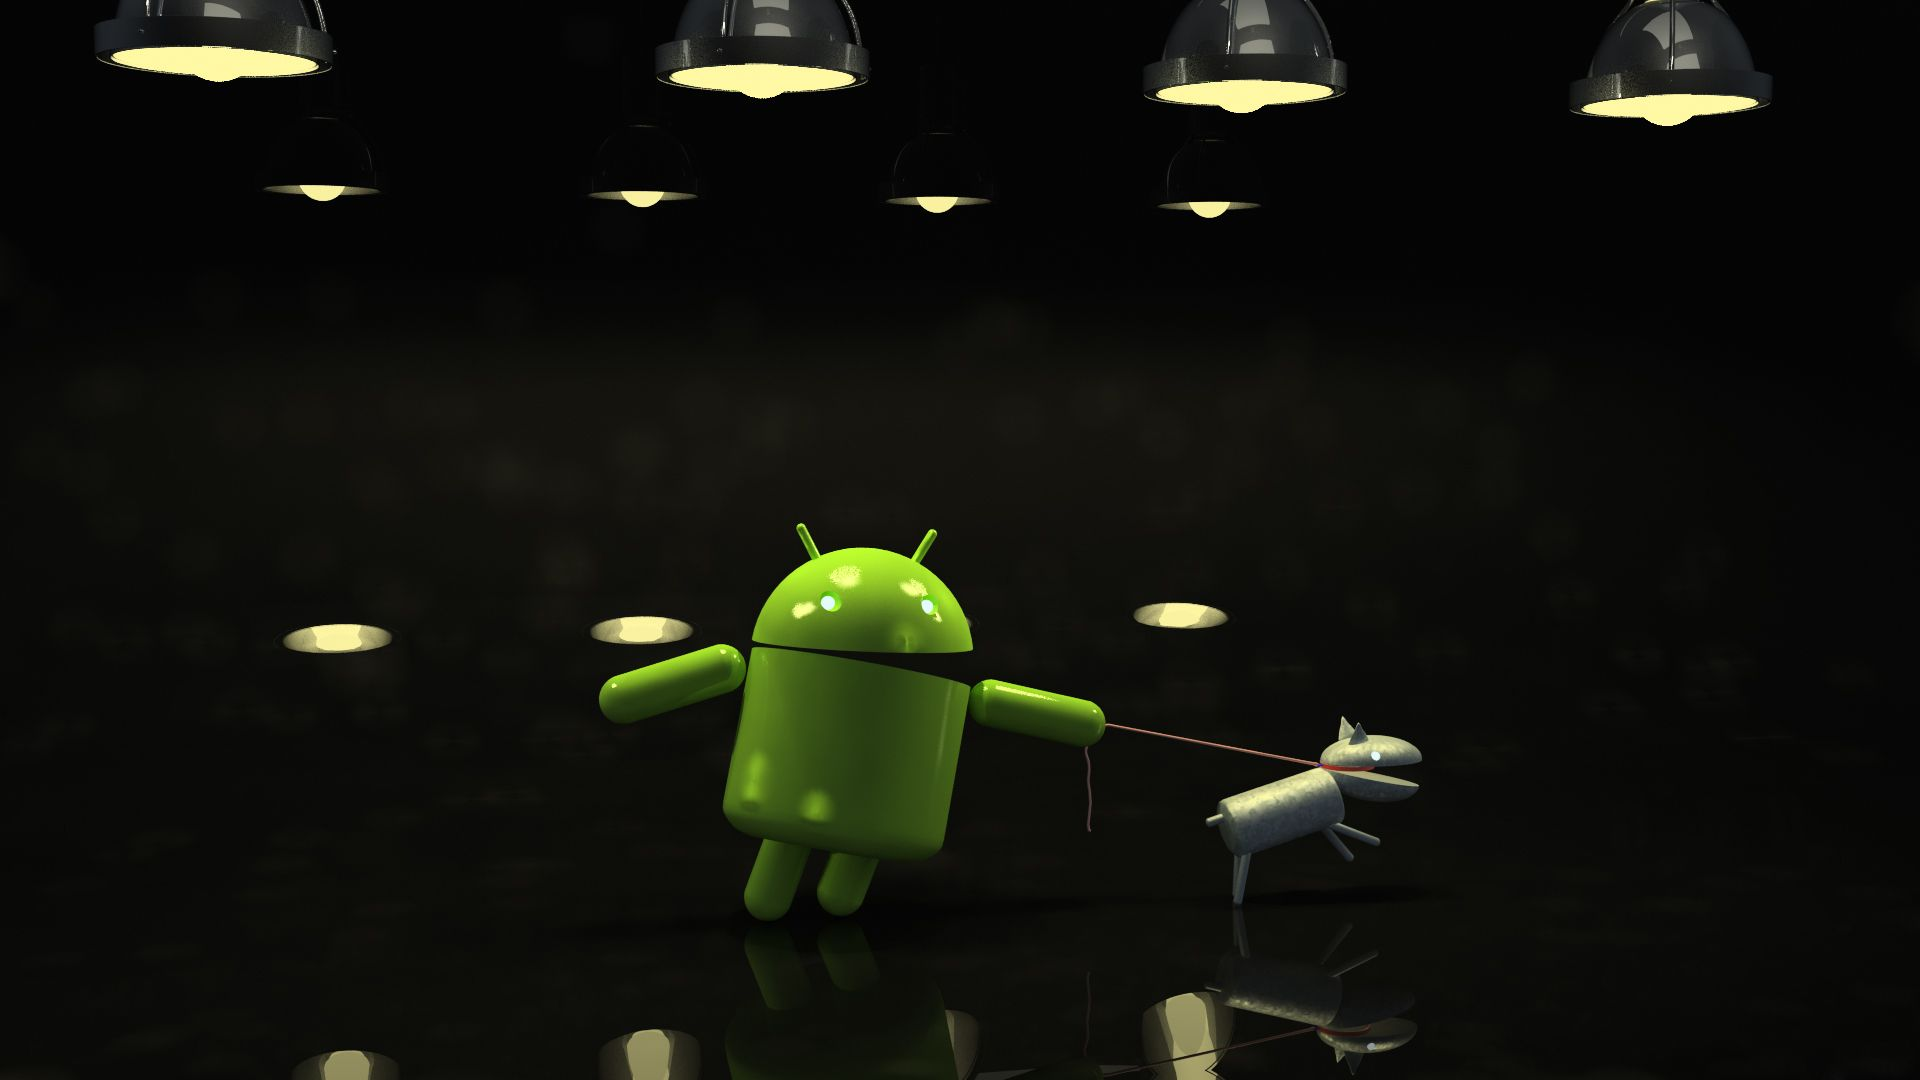 The Wallpaper In Android